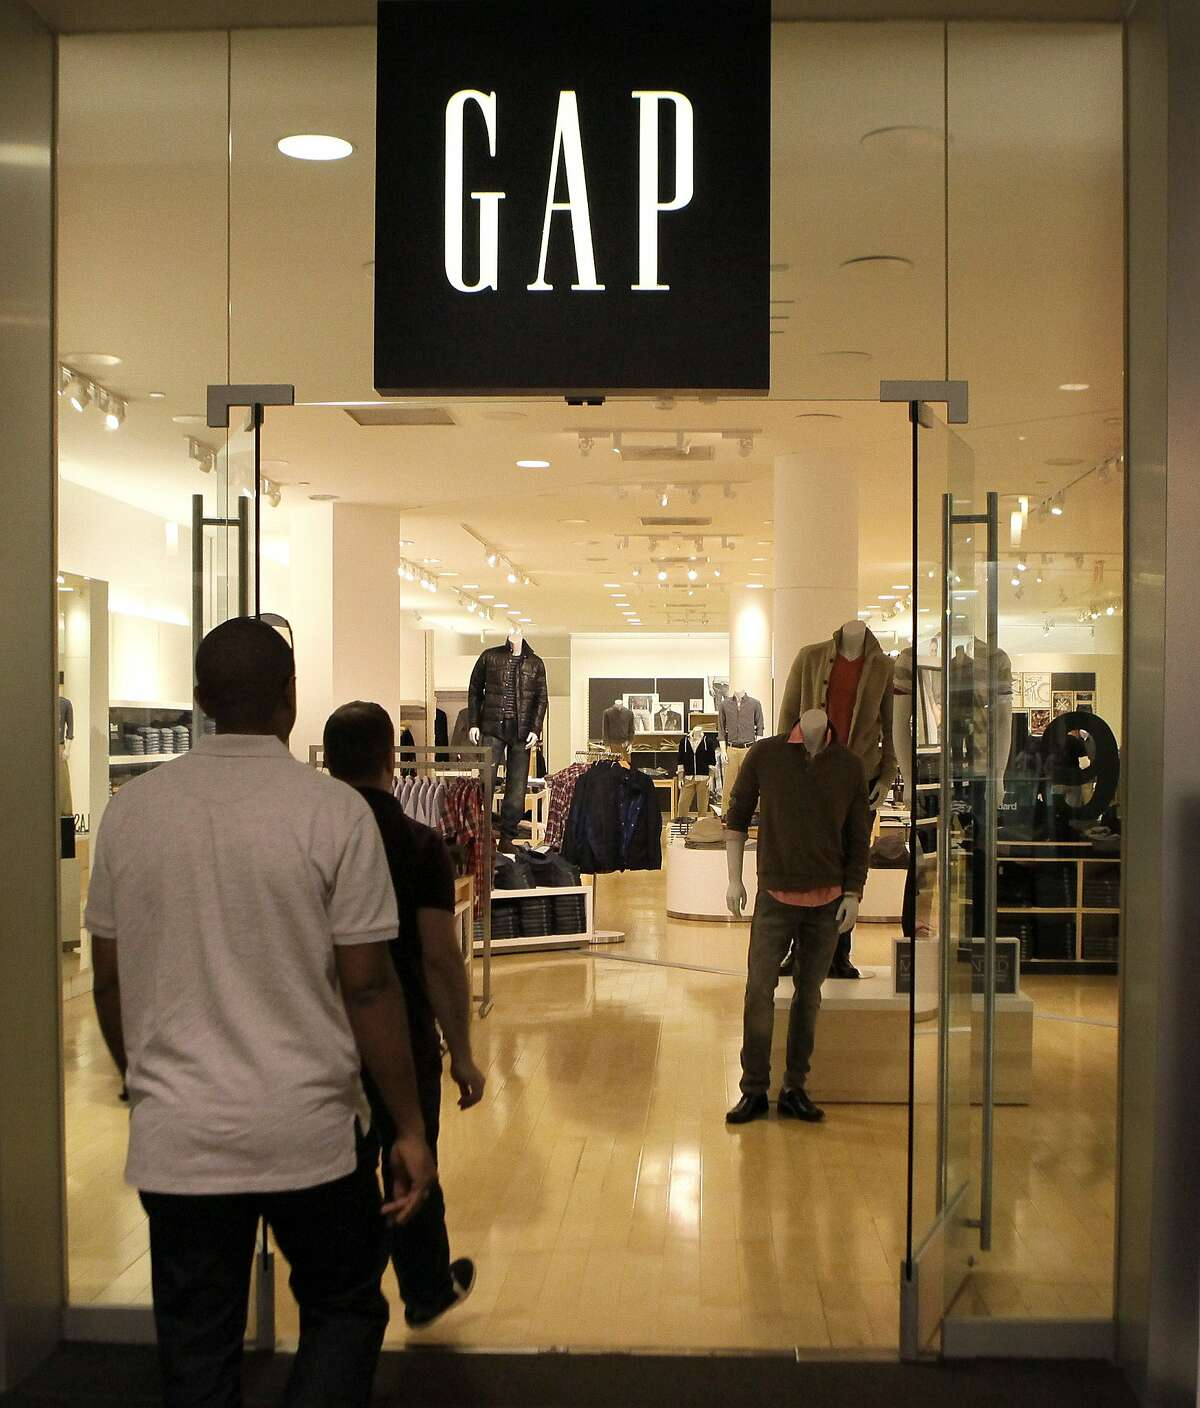 GAP Inc.: The famous retailer was founded in San Francisco in 1969 by Donald and Doris Fisher. The headquarters remain in the city where it all started.